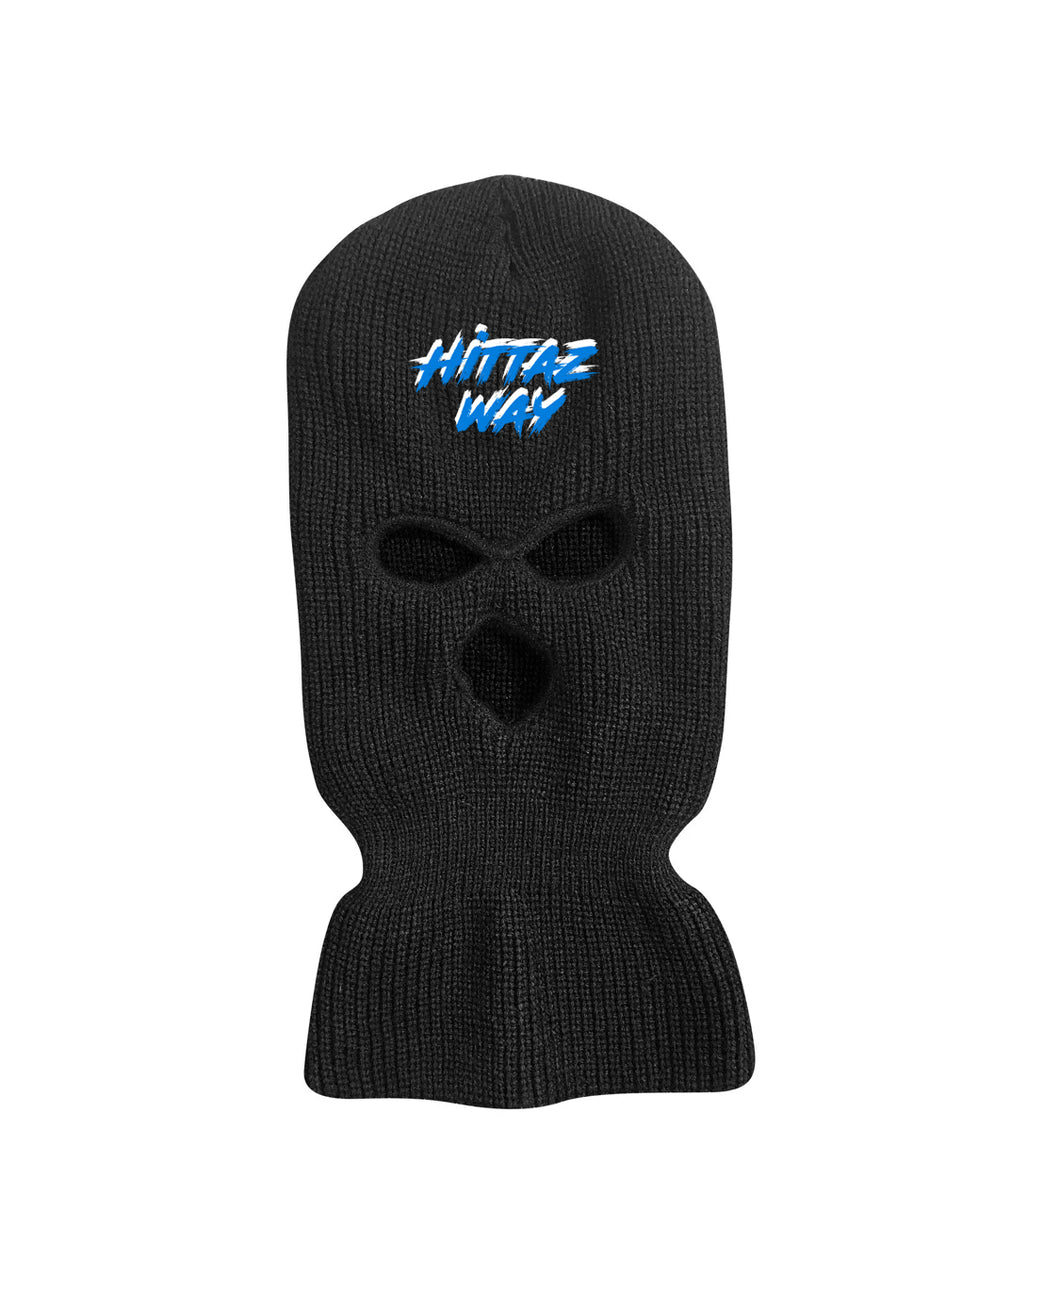 SKI MASK (BLACK/BLUE)